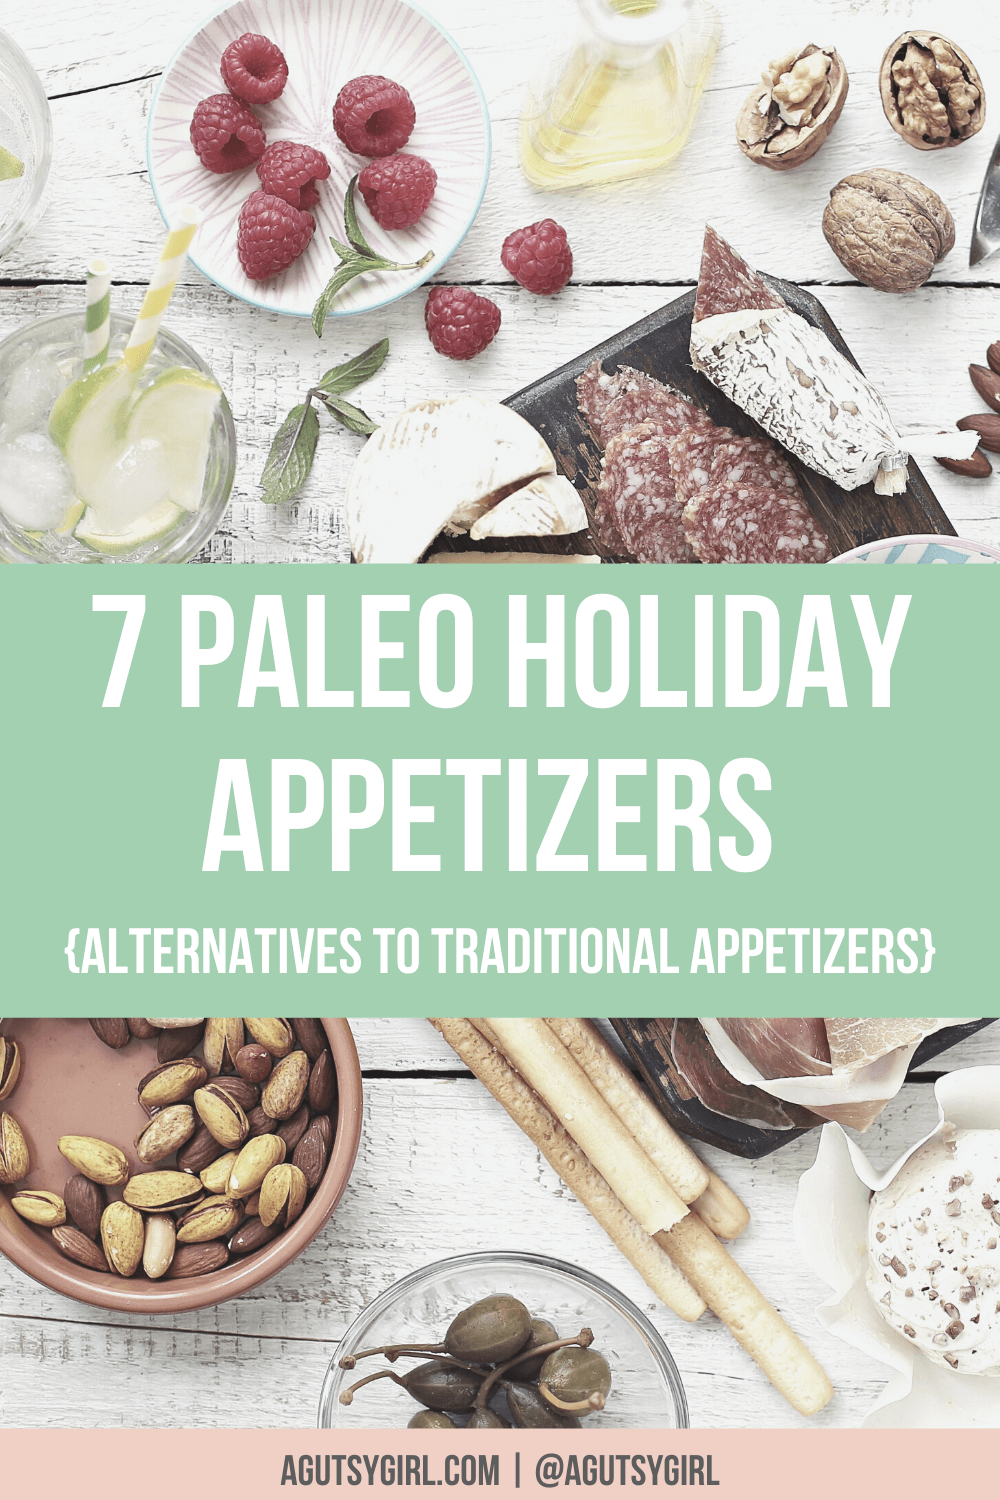 7 Paleo Holiday Appetizers Alternatives to Traditional Apps agutsygirl.com #guthealth #leakygut #holidayappetizers #paleoappetizers